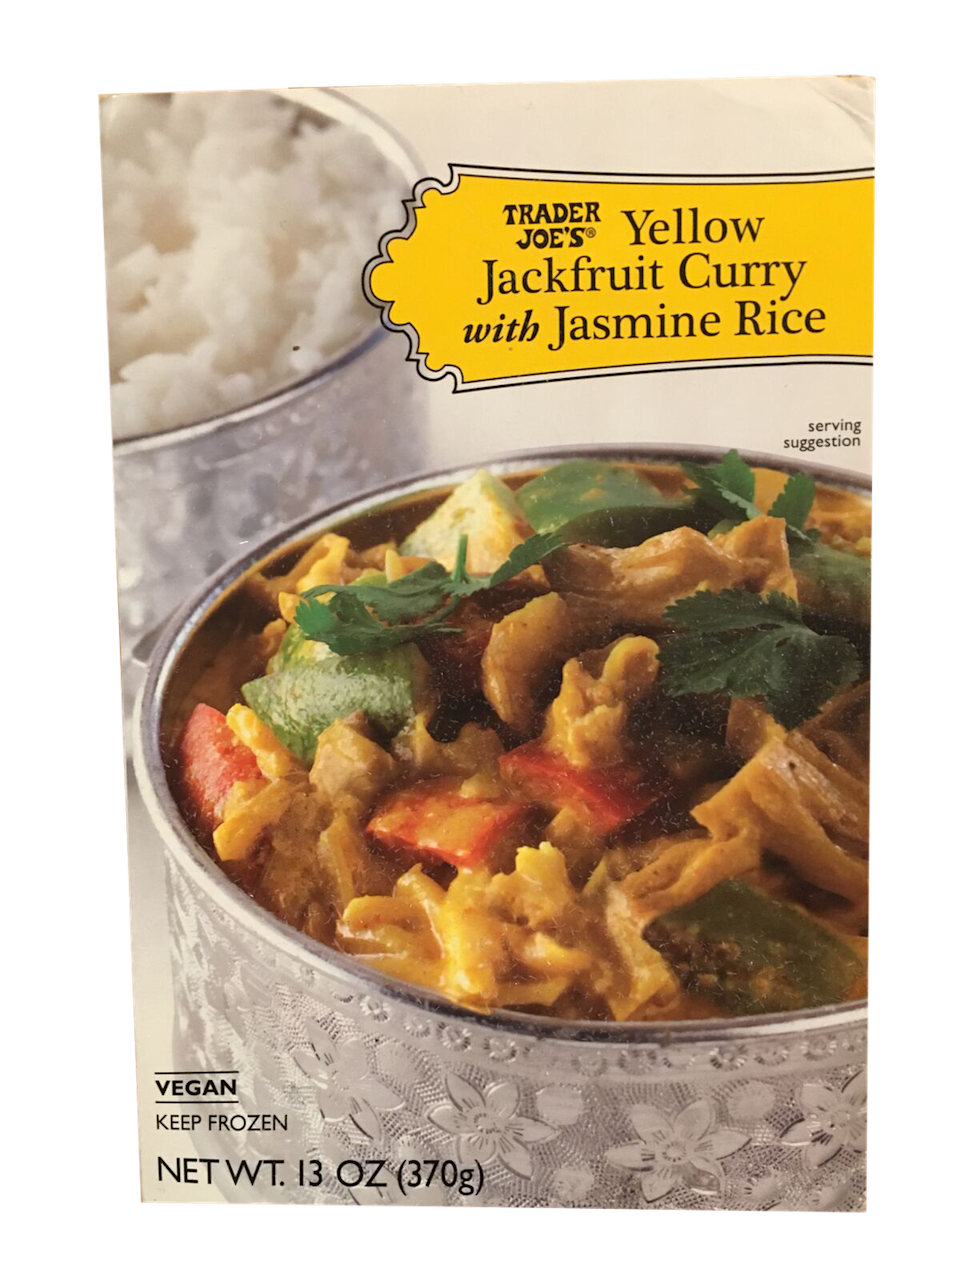 <p>I didn't know what jackfruit was prior to eating this, but I was very into this vegetarian meal. It's supposed to have the same texture as pulled pork, and it delivered. There was also more curry than rice, which is not always the case in frozen meals.</p>